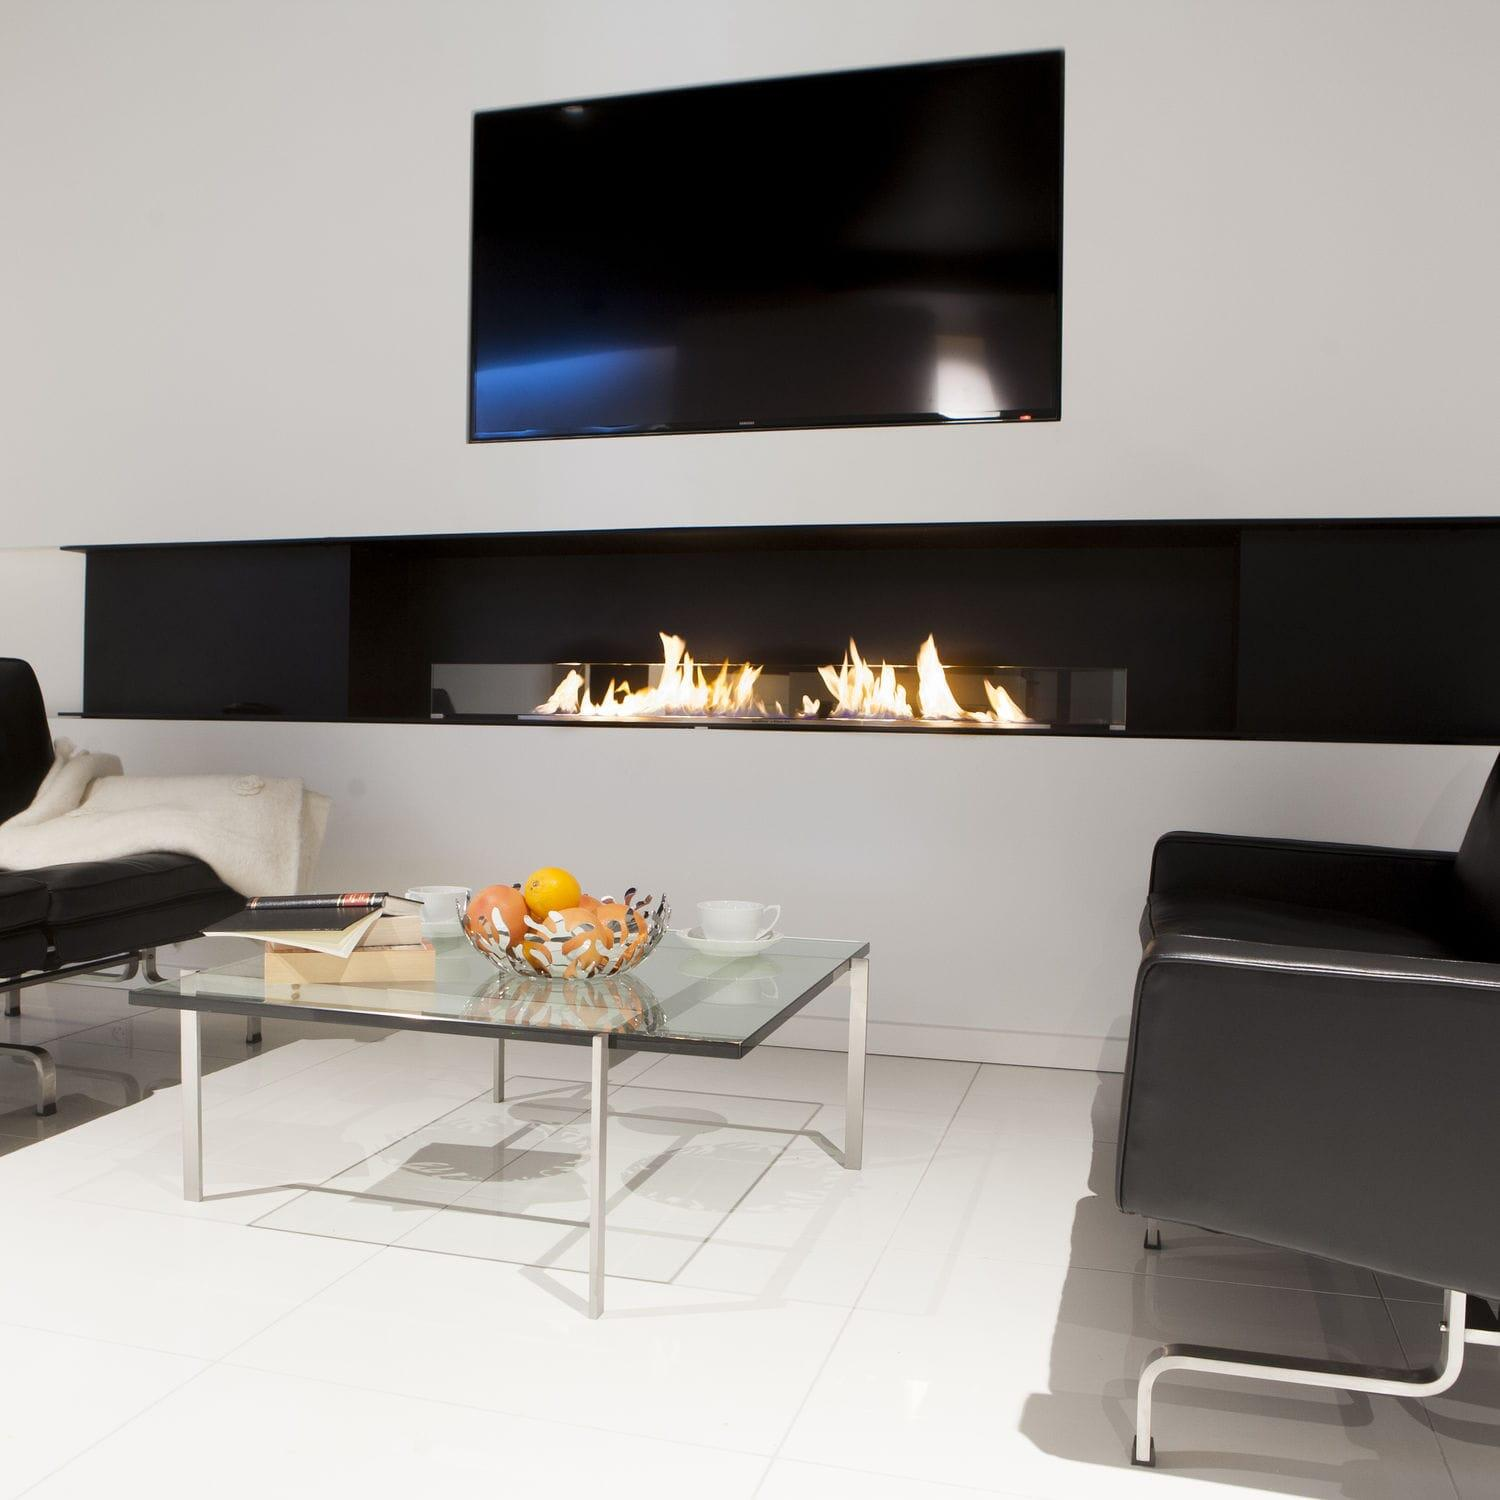 18 Inch Wifi Real Fire Automatic Intelligent Smart Electric Ignition Bio Ethanol Fire